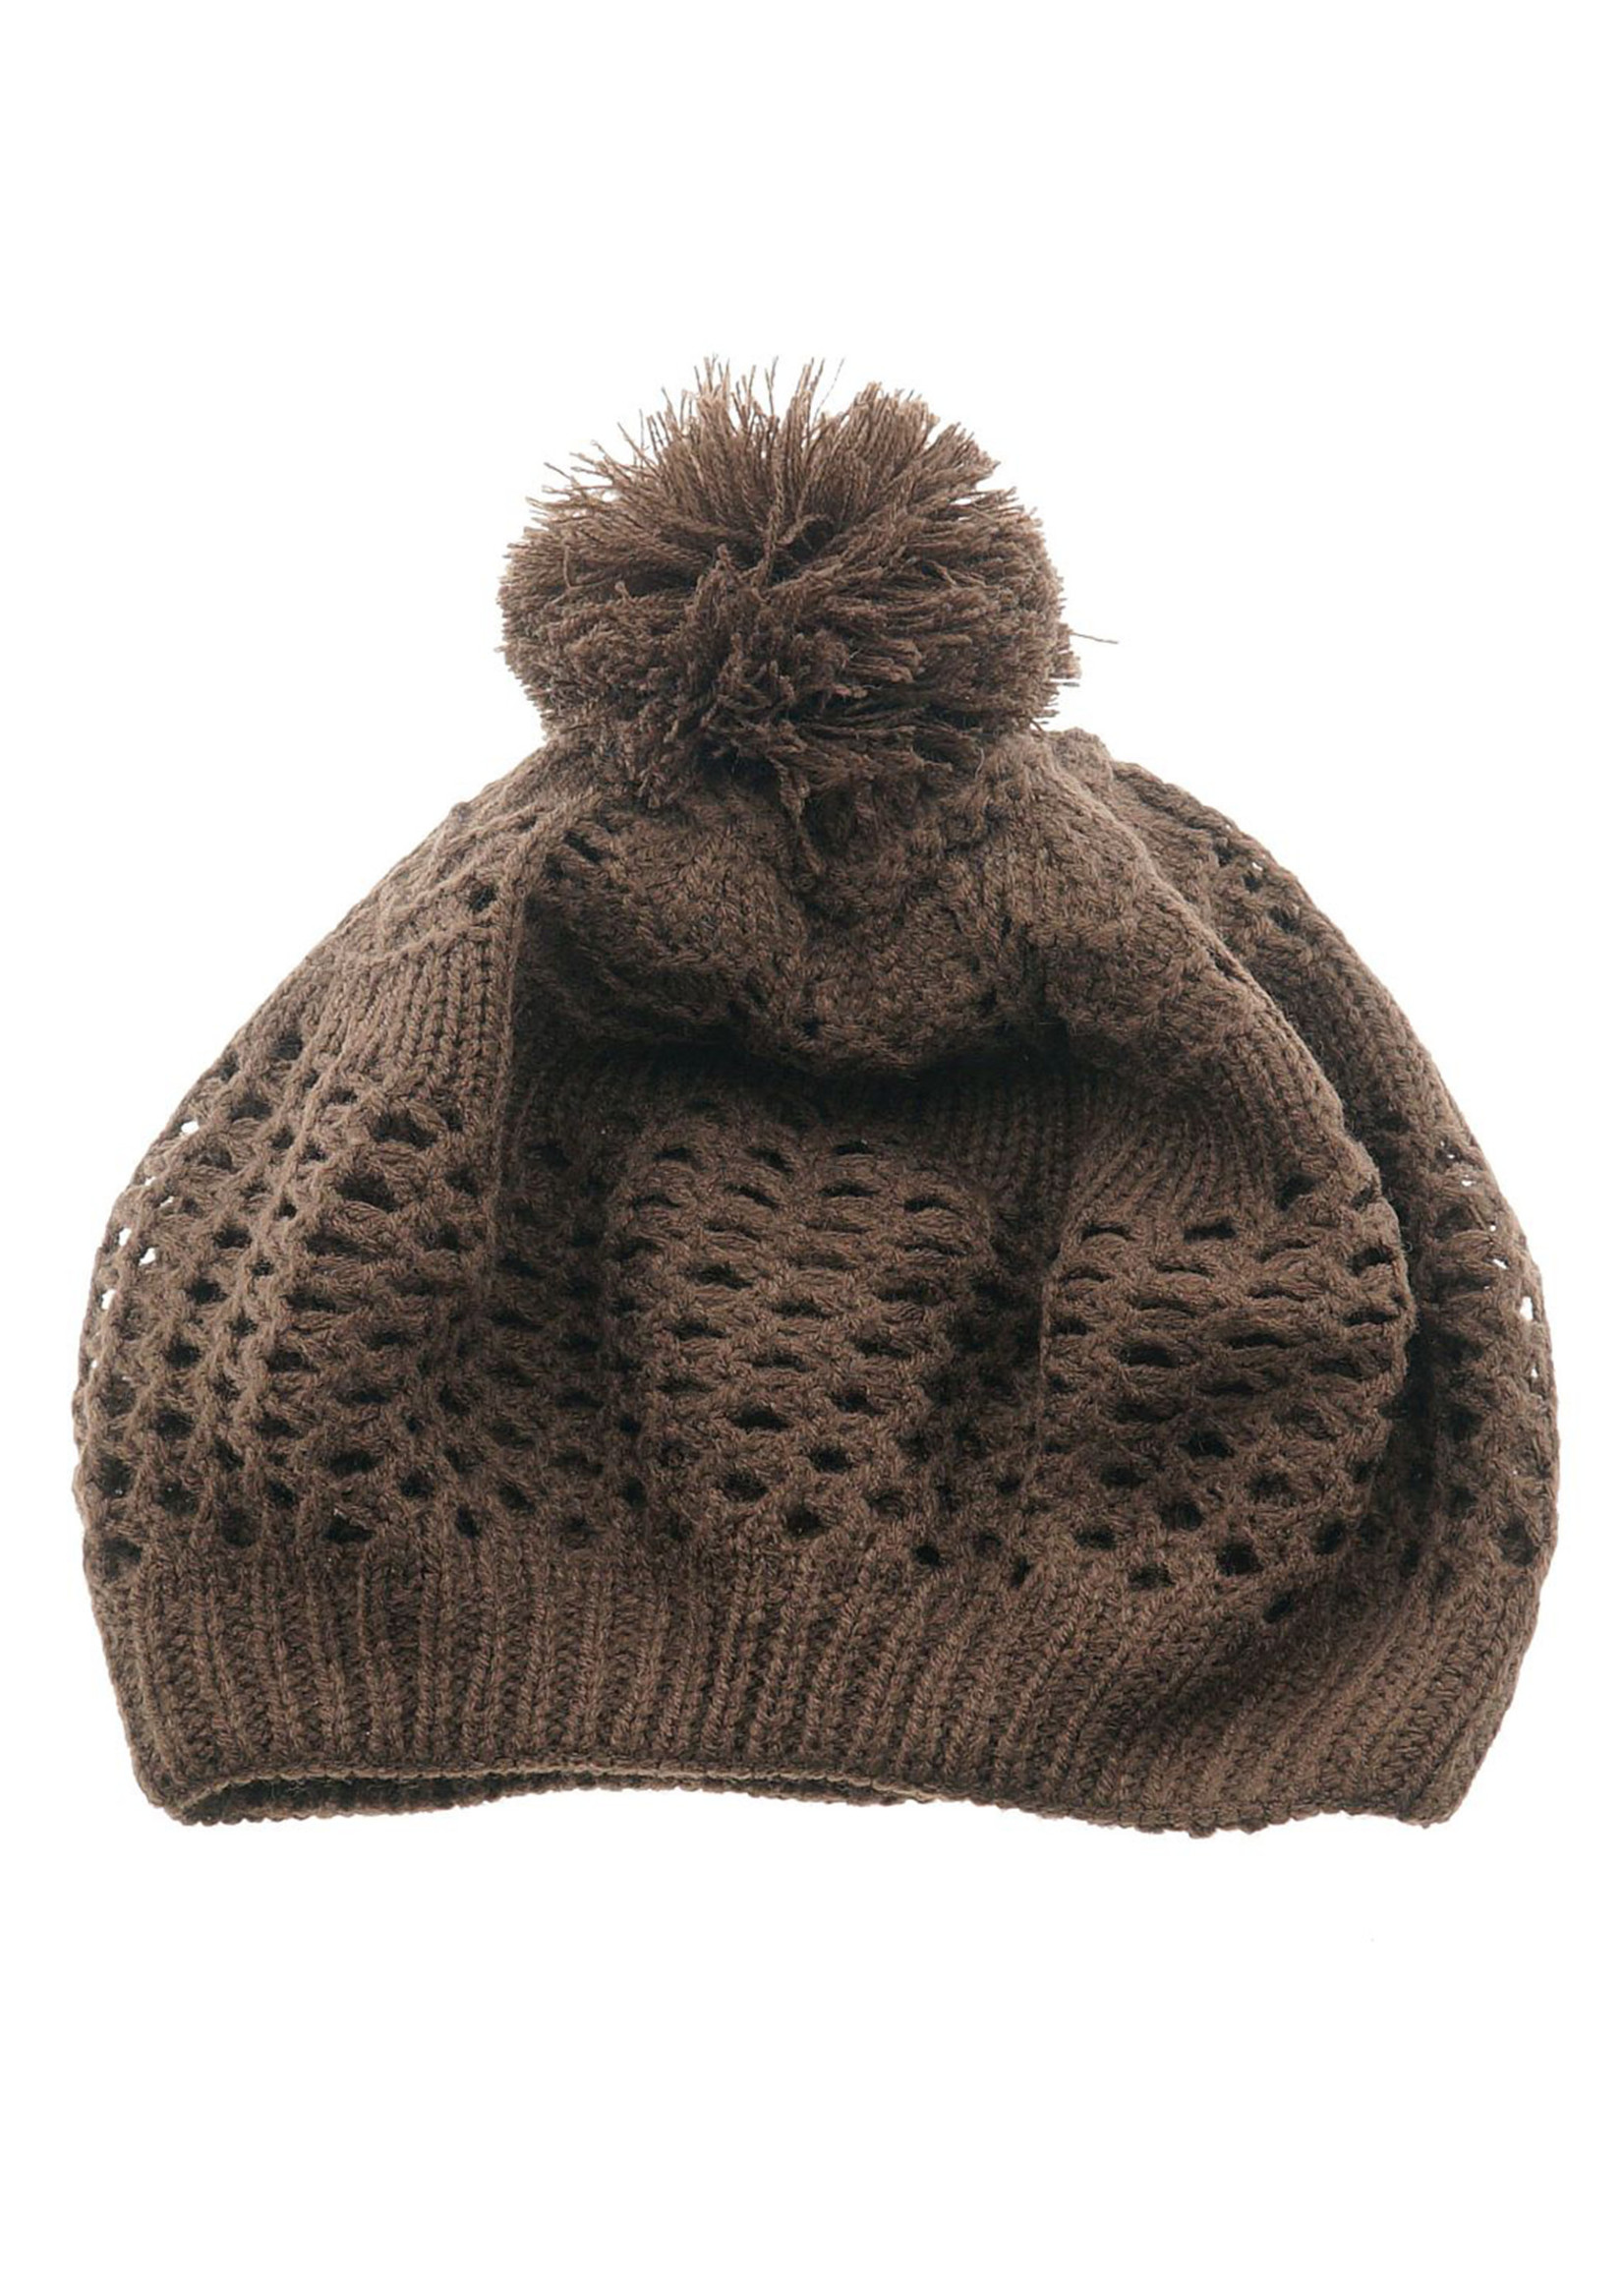 Knitted hat in Brown